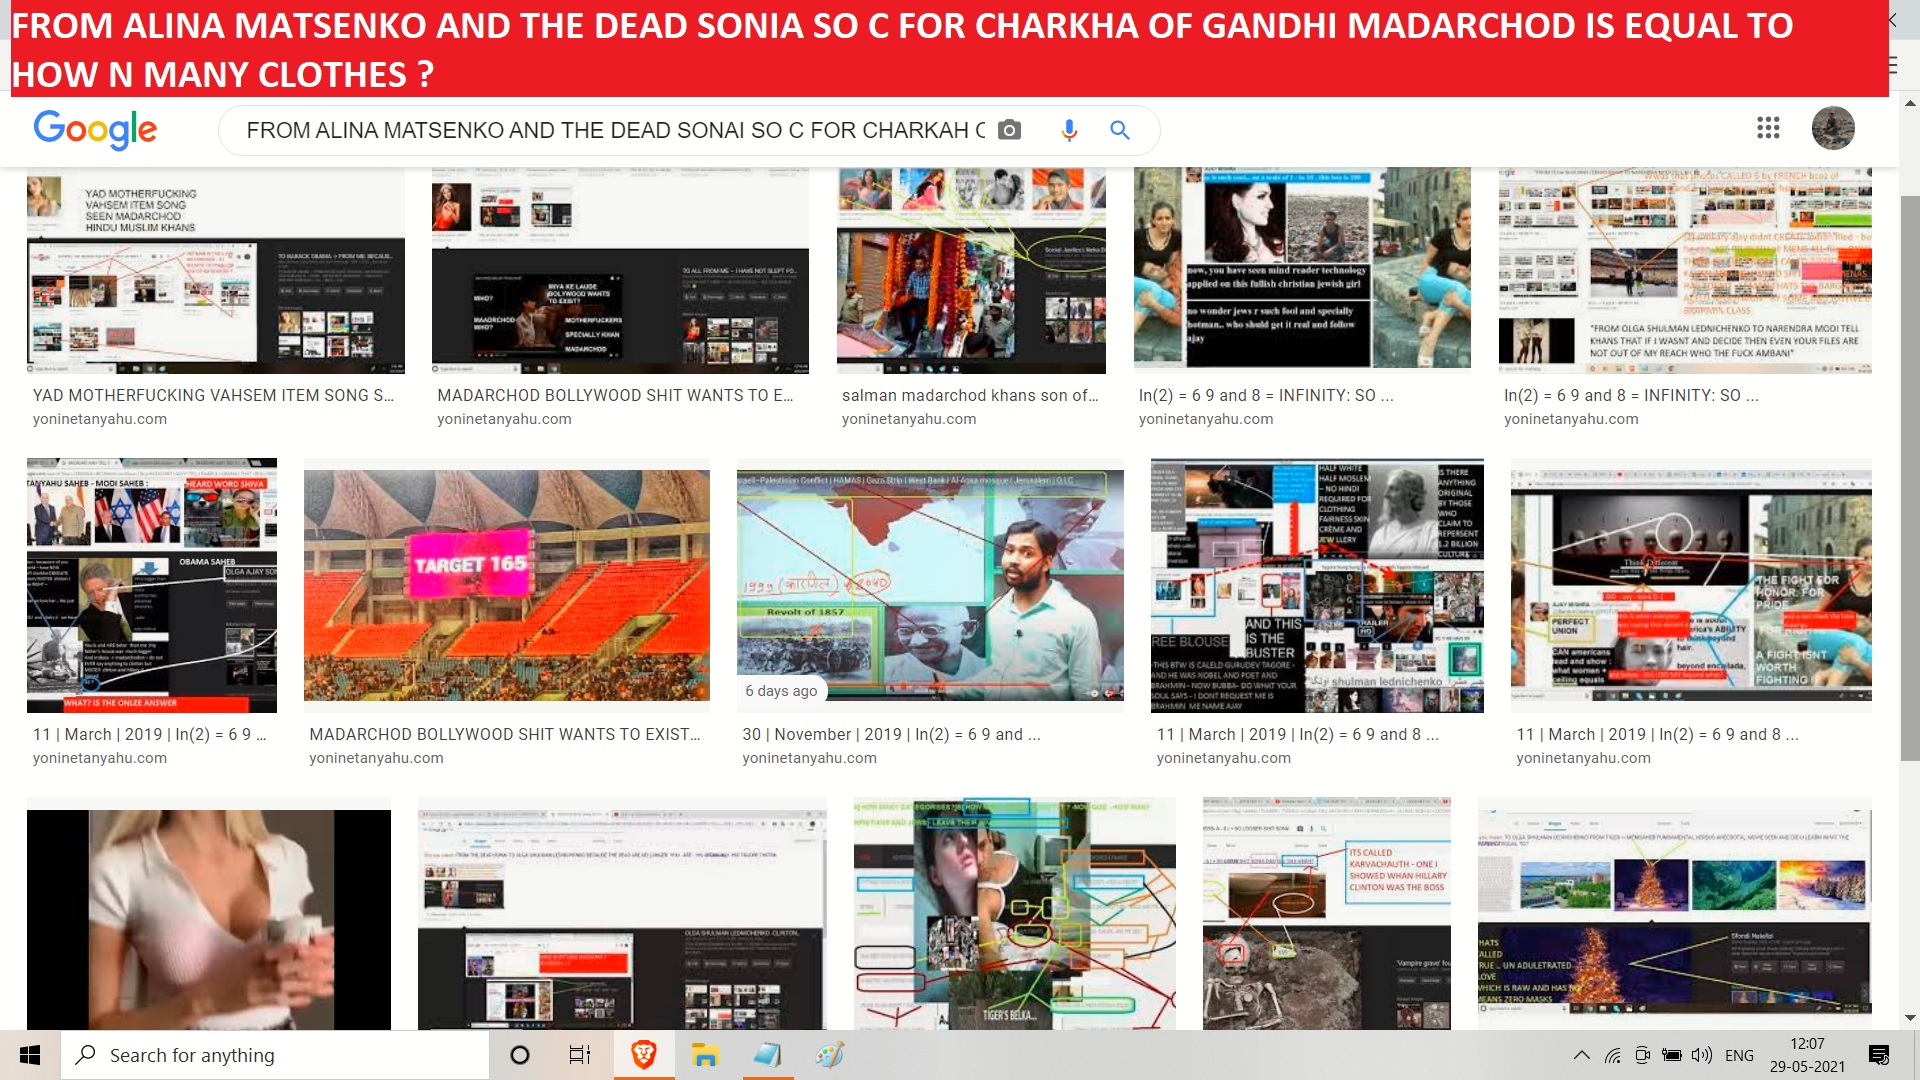 FROM ALINA MATSENKO AND THE DEAD SONIA SO C FOR CHARKHA OF GANDHI MADARCHOD IS EQUAL TO HOW N MANY CLOTHES